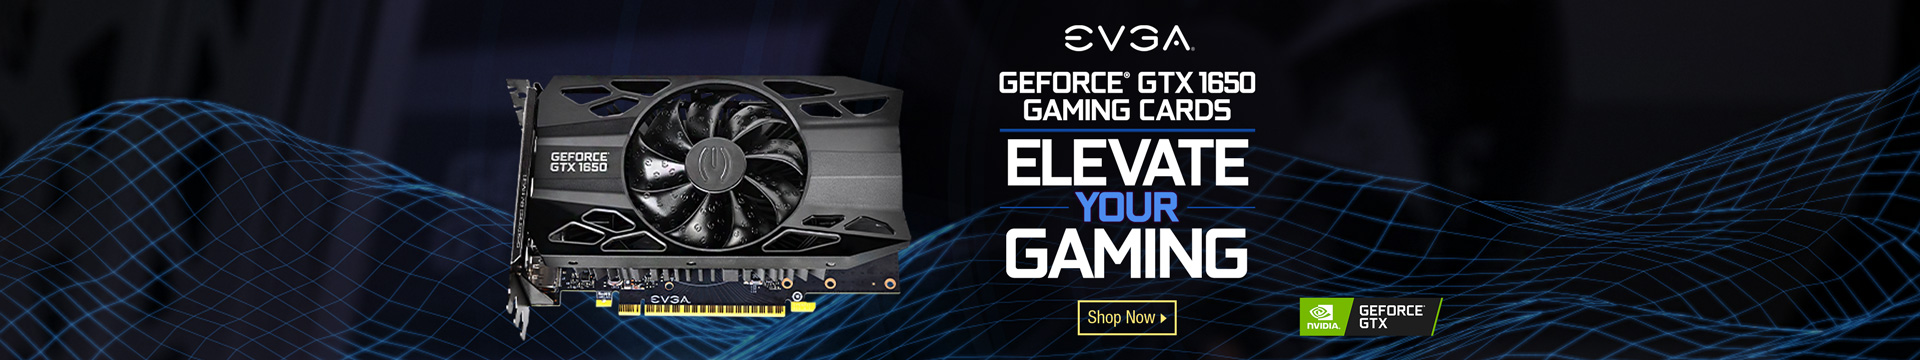 Elevate your gaming